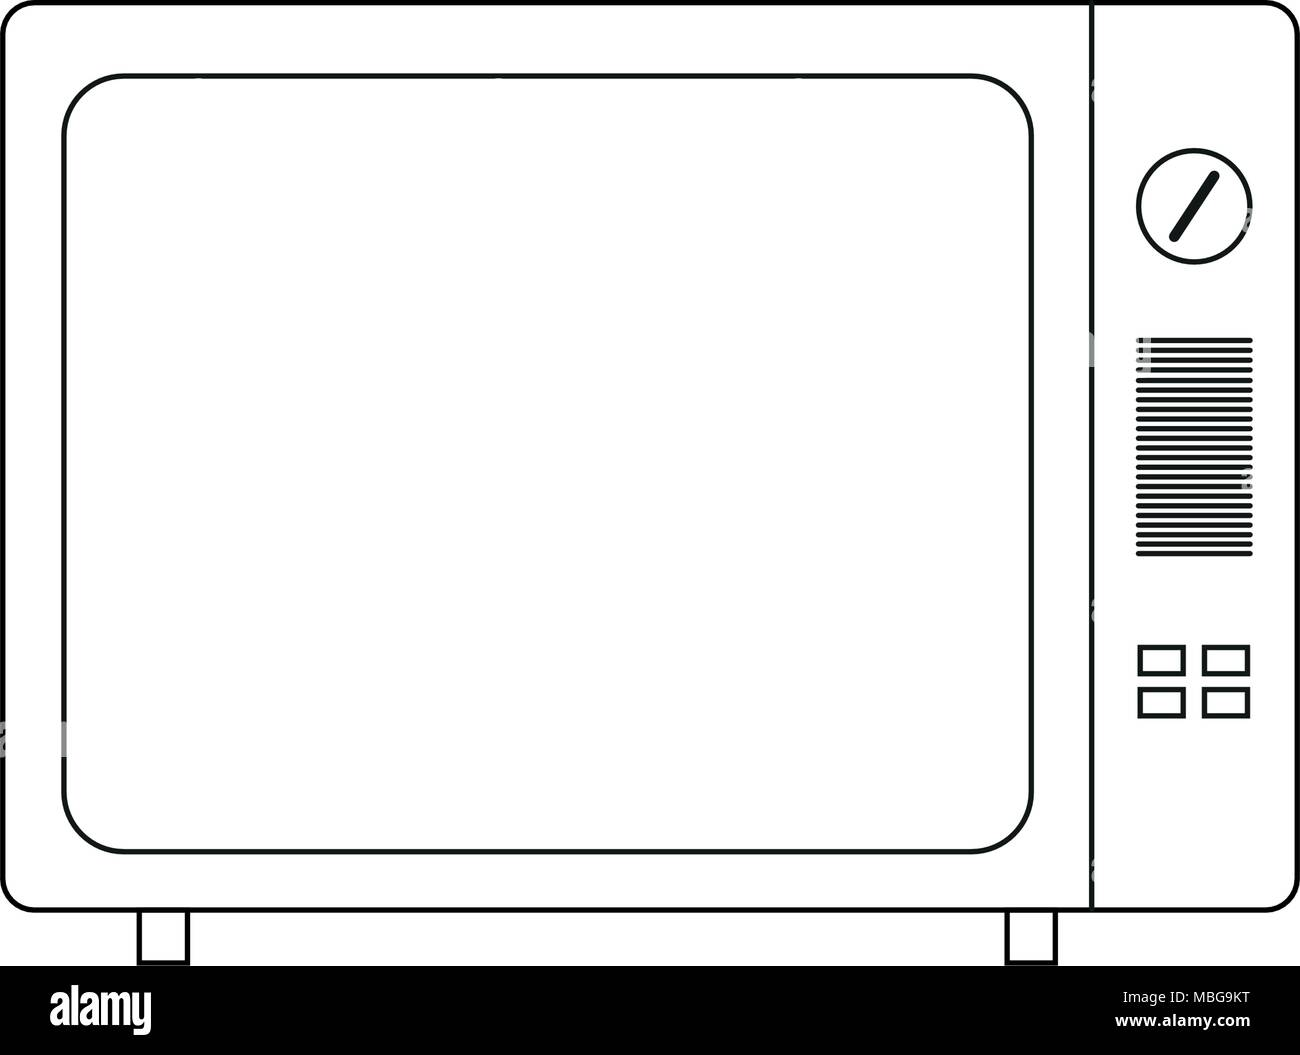 TV vector drawing. Flat style vector. Television icon, symbol isolated on white background, surface. - Stock Image